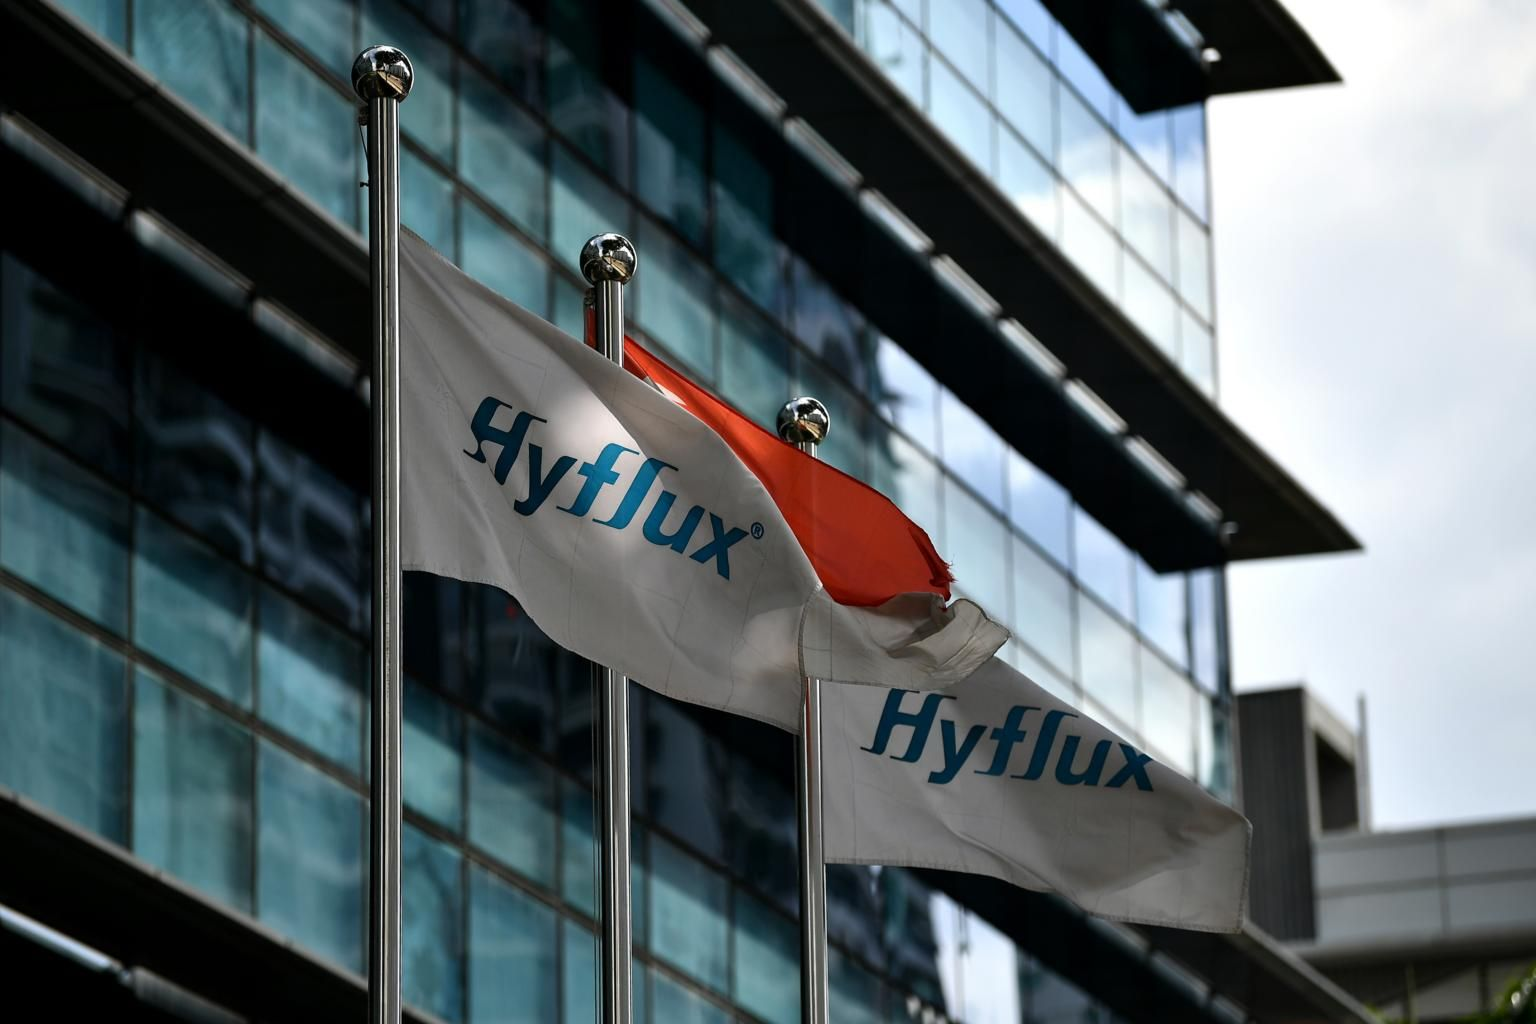 Stocks to watch: Hyflux, Olam, Oxley, First Resources, Hong Fok